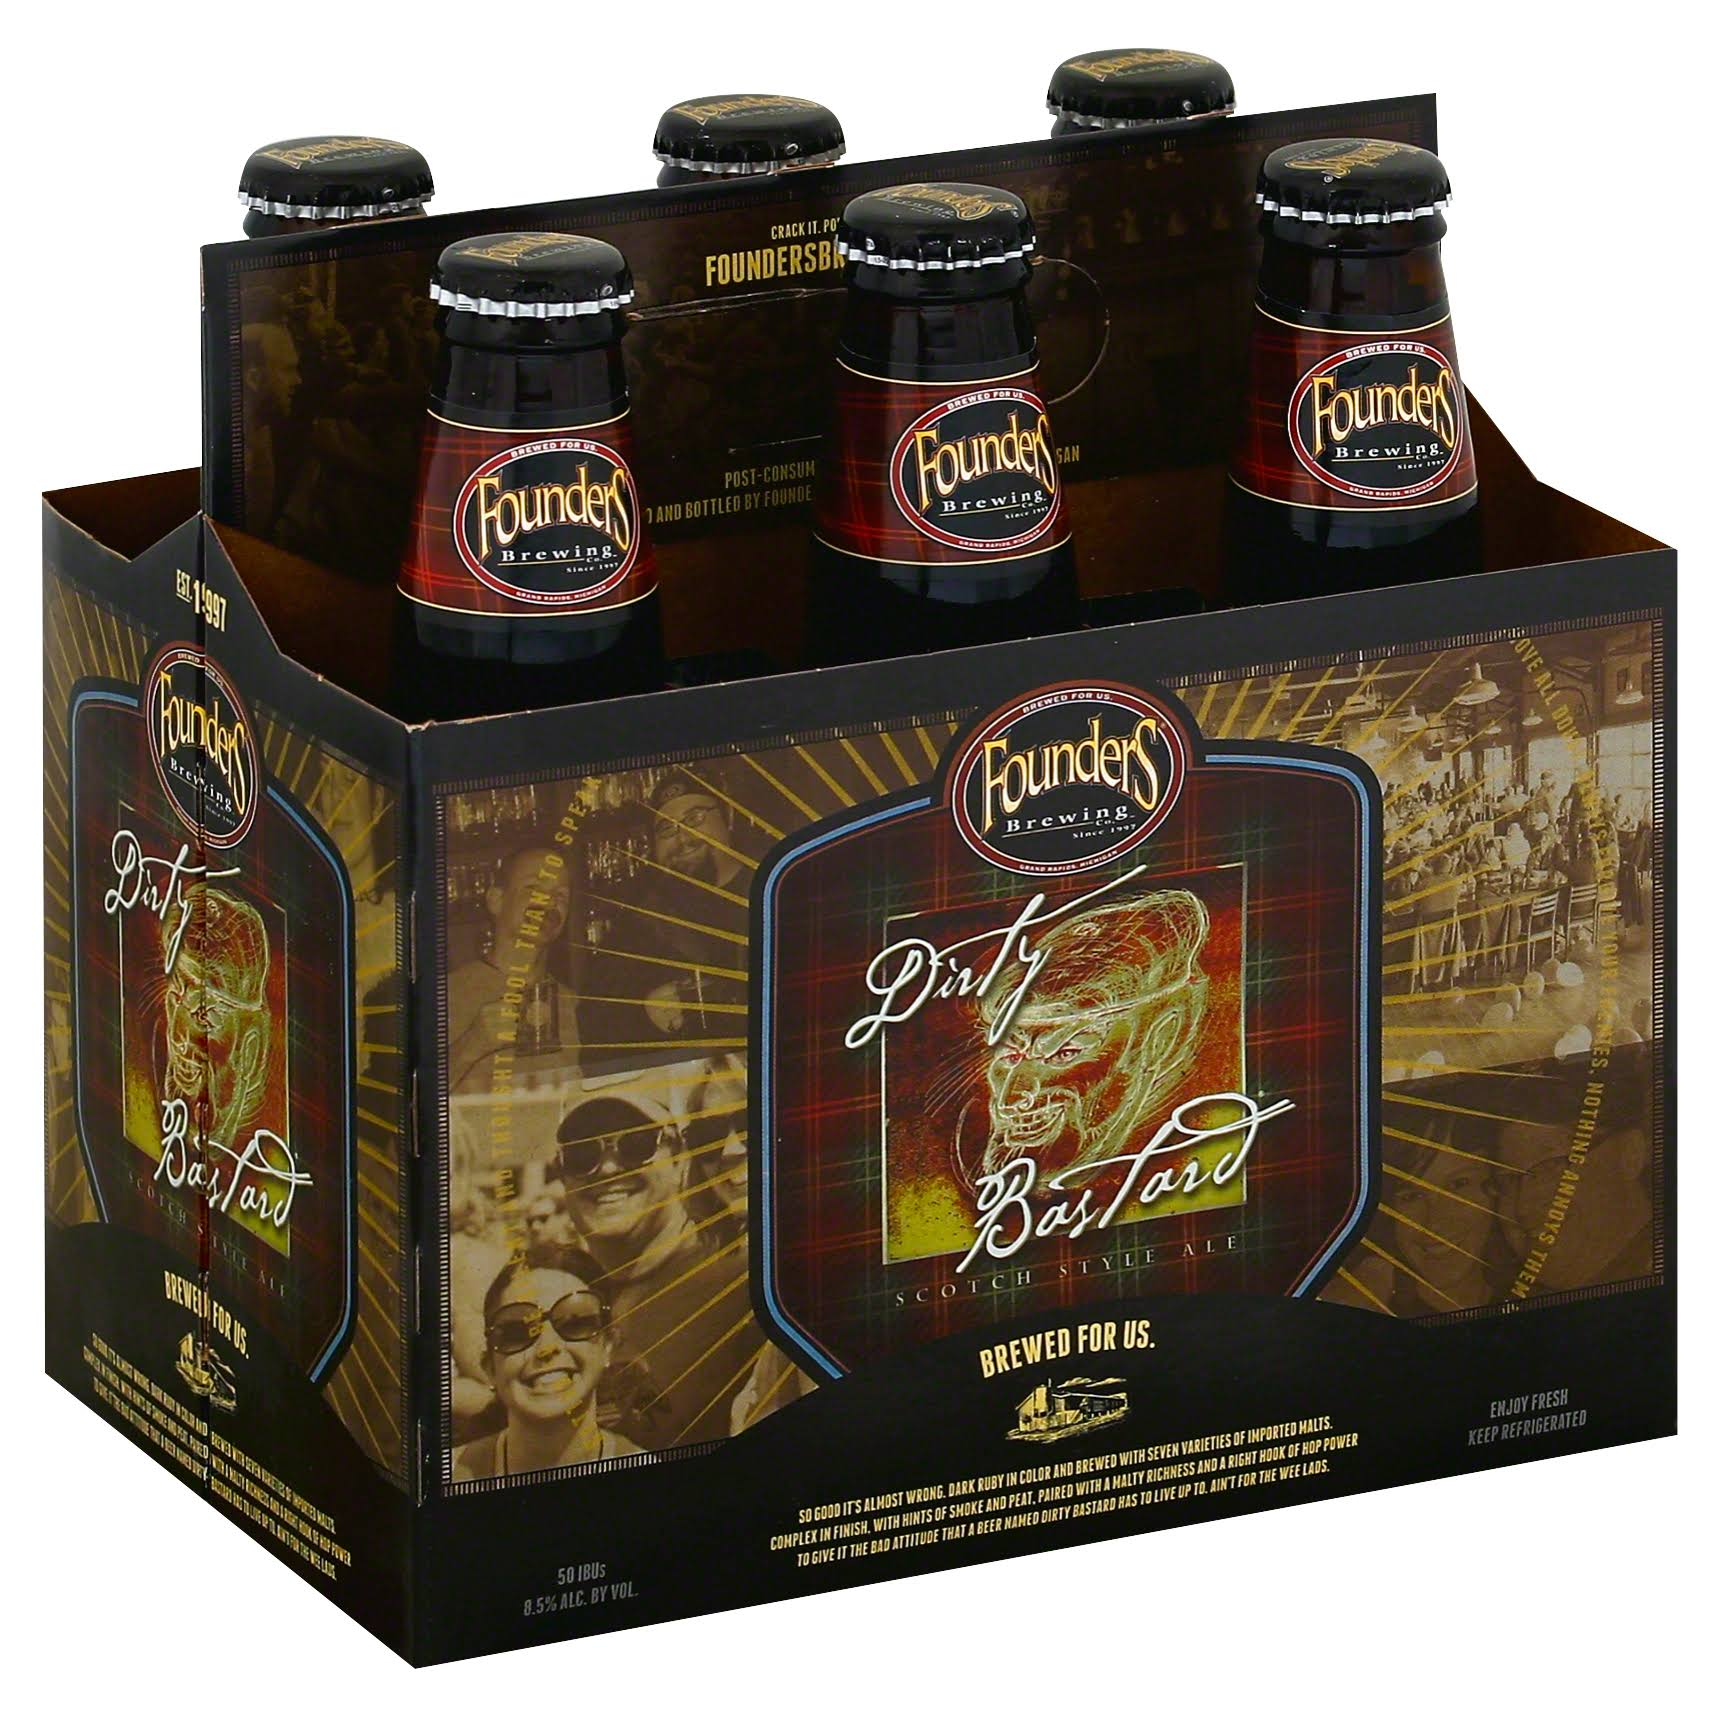 Founders Dirty Bastard Beer - 6 pack, 12 fl oz bottles